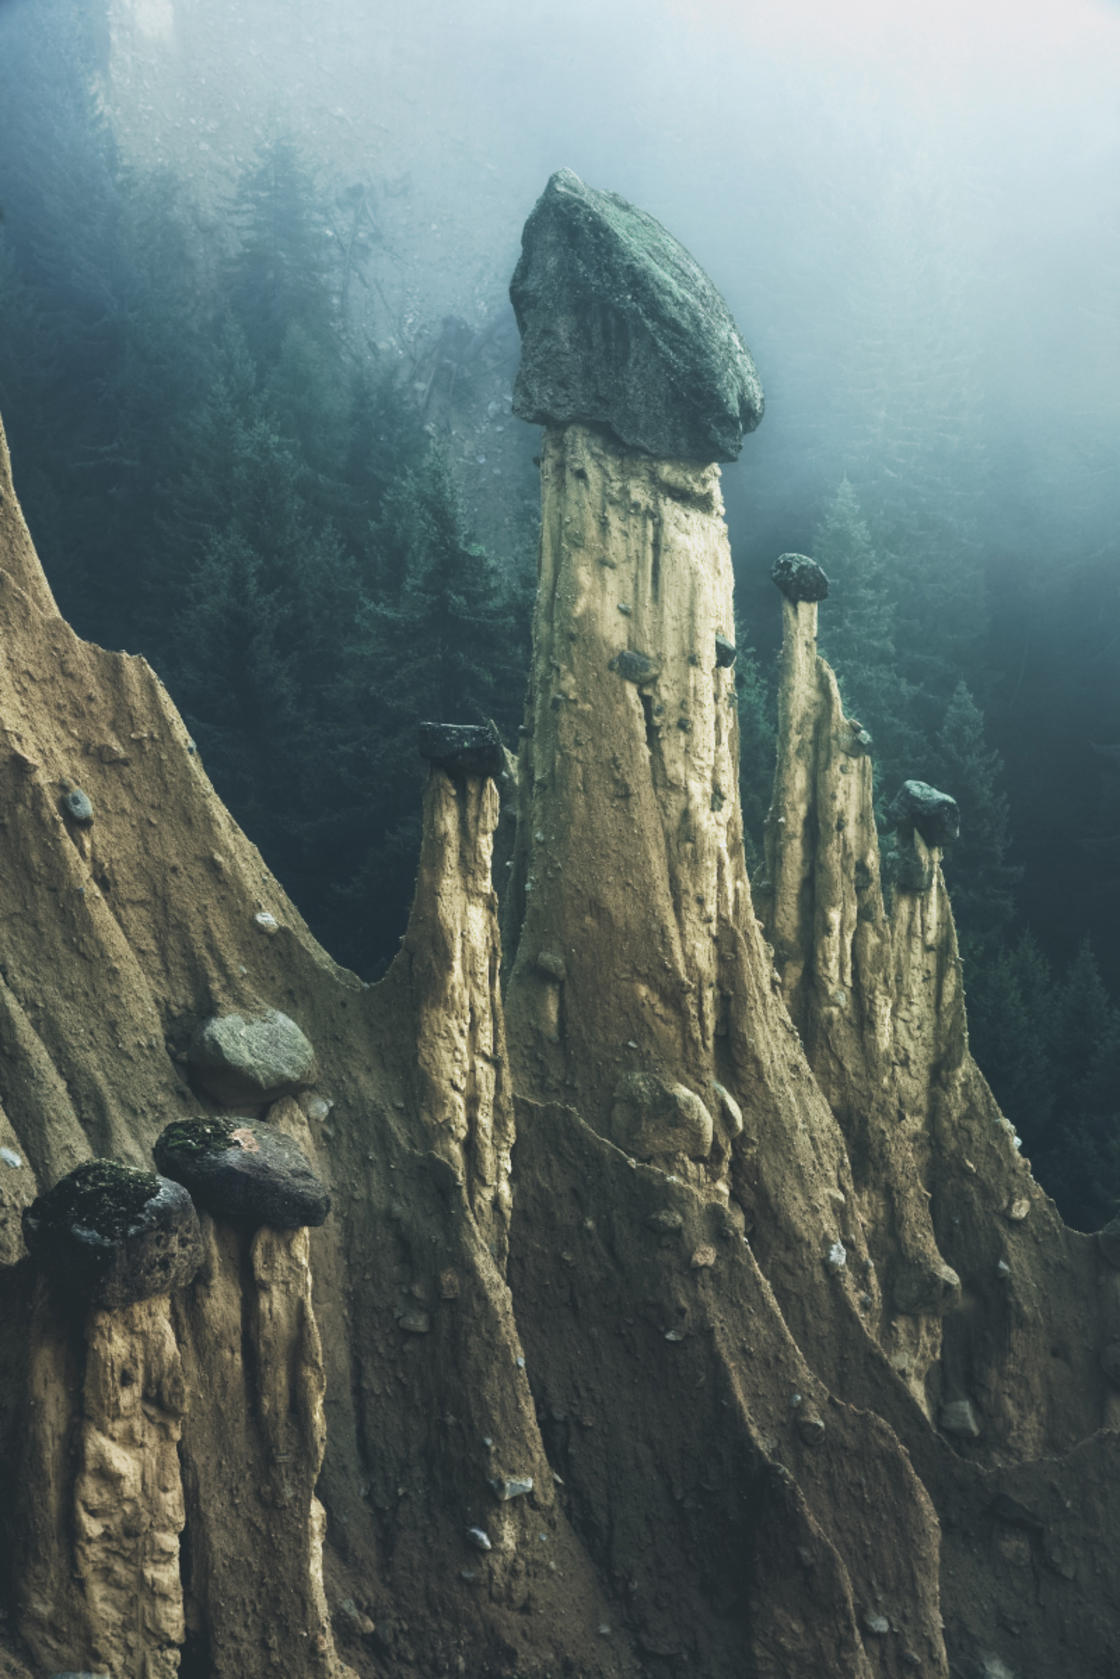 Otherworld – These strange geological formations are formed by erosion